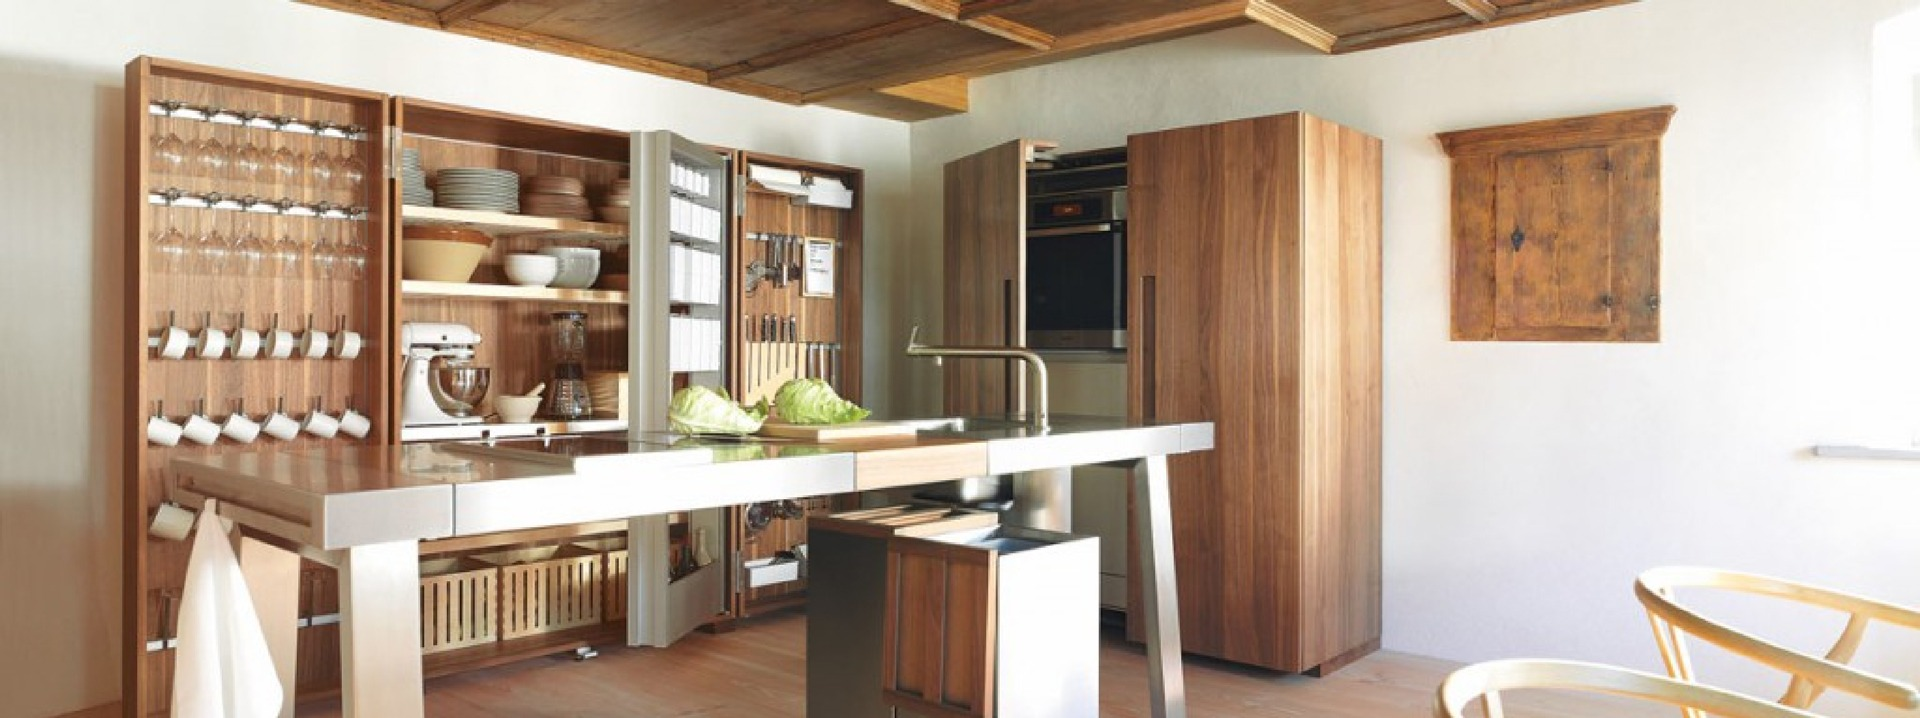 kitchen-concepts-1024x517@2x